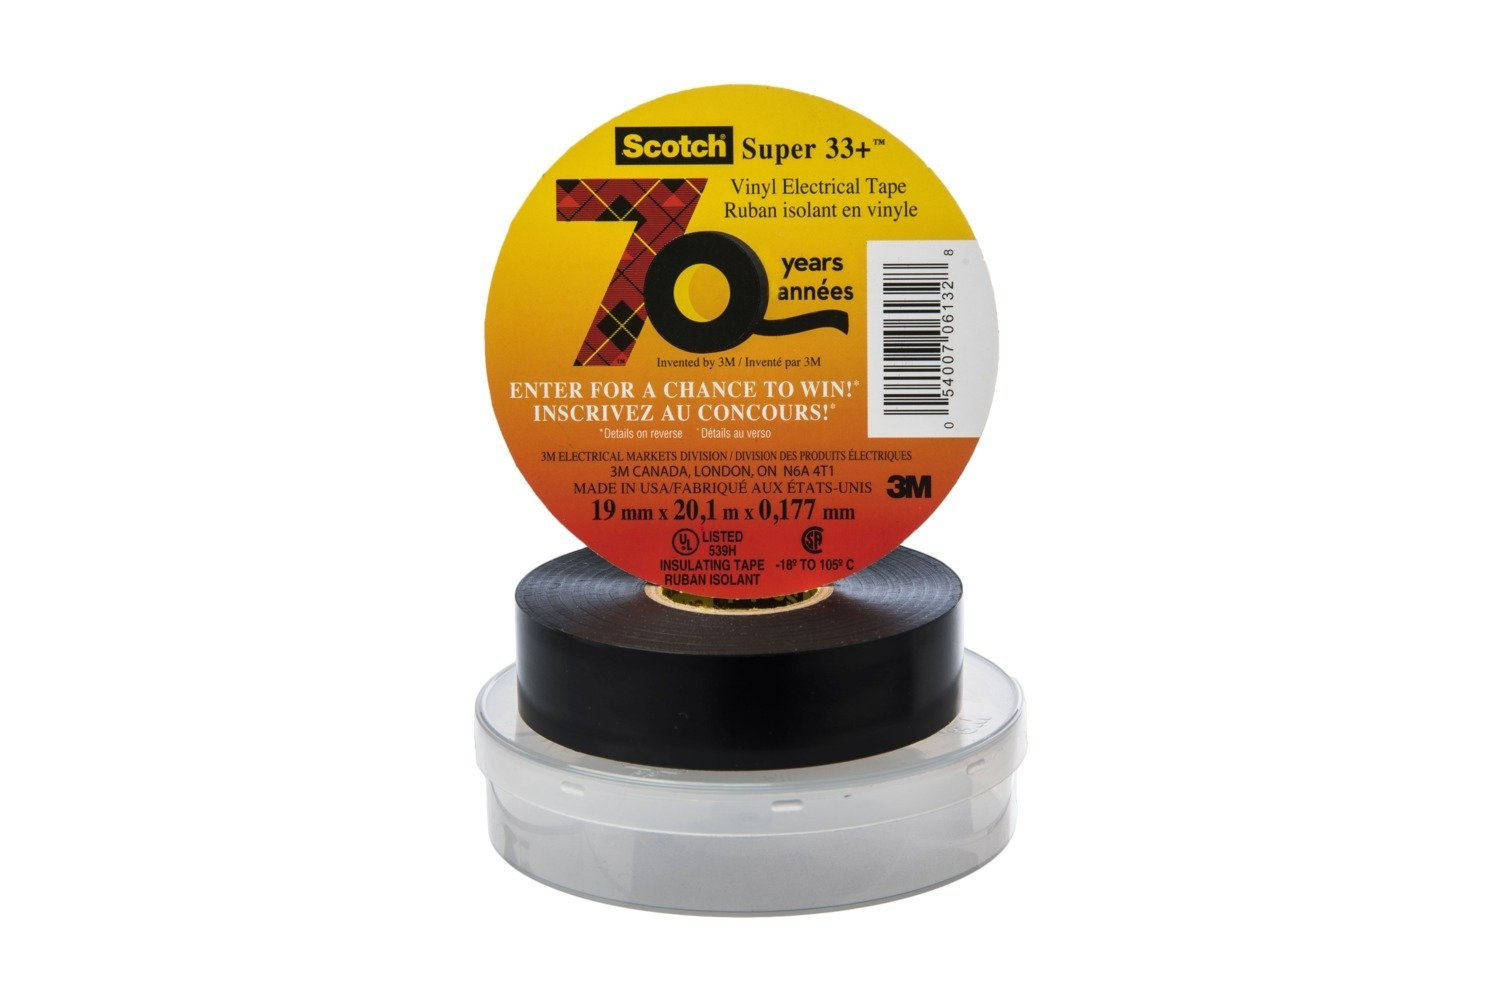 Amazon.com: Scotch Super 33+ Vinyl Electrical Tape, 3/4 in x 66 ft: Industrial & Scientific